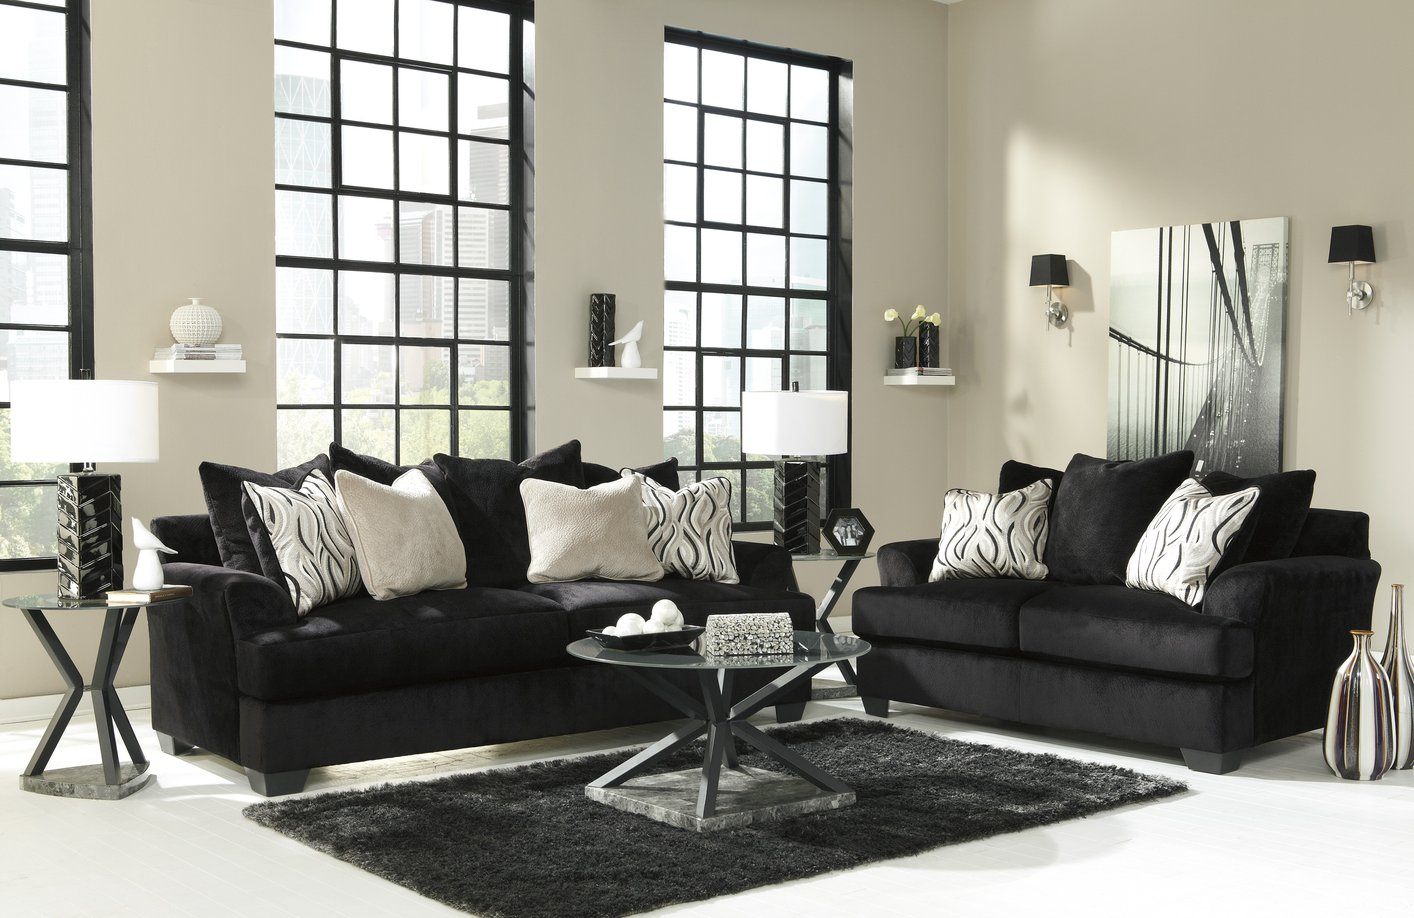 Modern Living Room Design With Black Couch And Loveseat Set In White With  Round Coffee Table